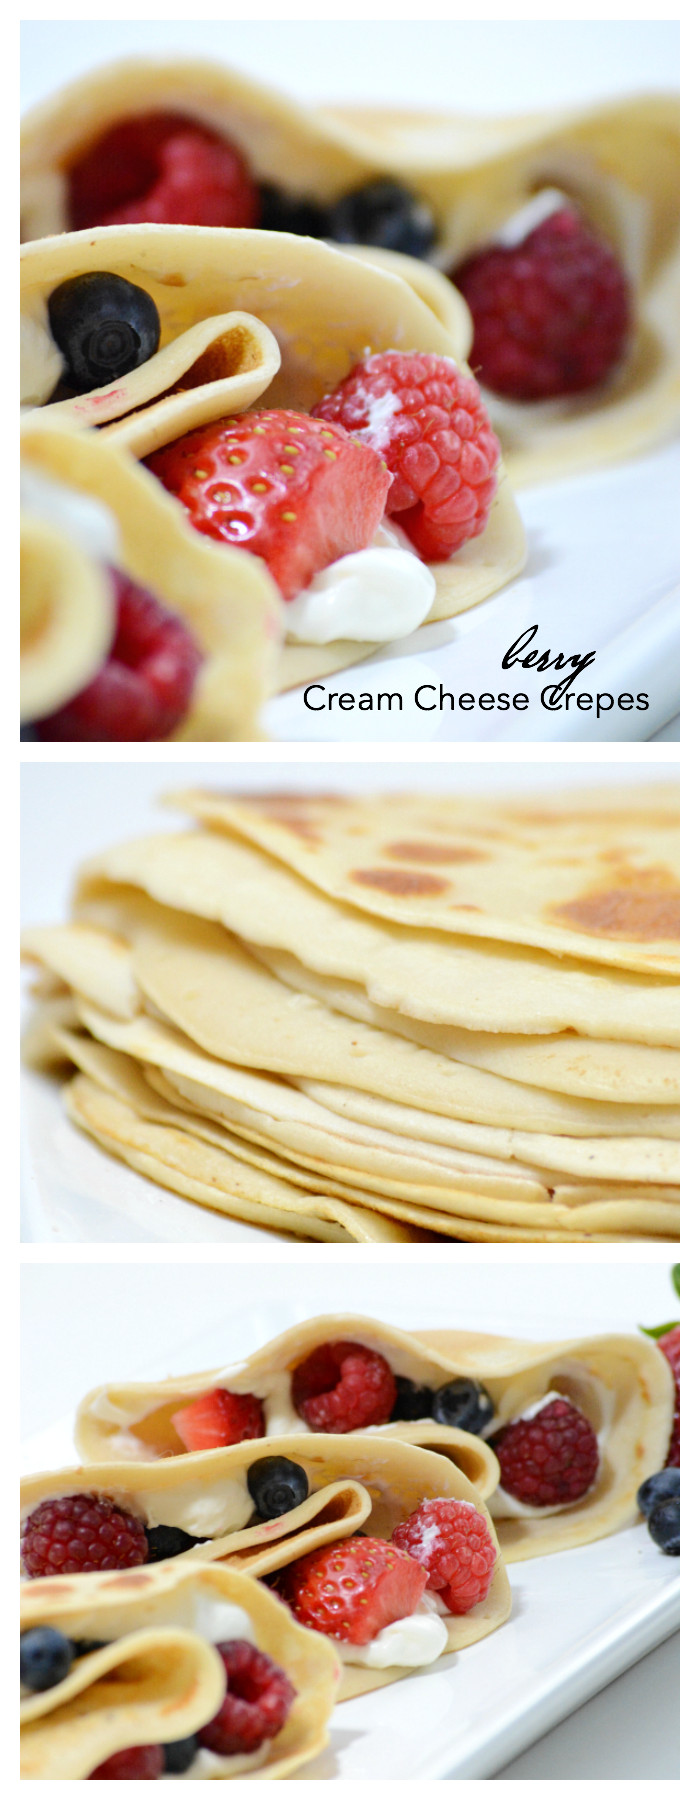 Cream Cheese Crepes  Berry Cream Cheese Crepes The Idea Room